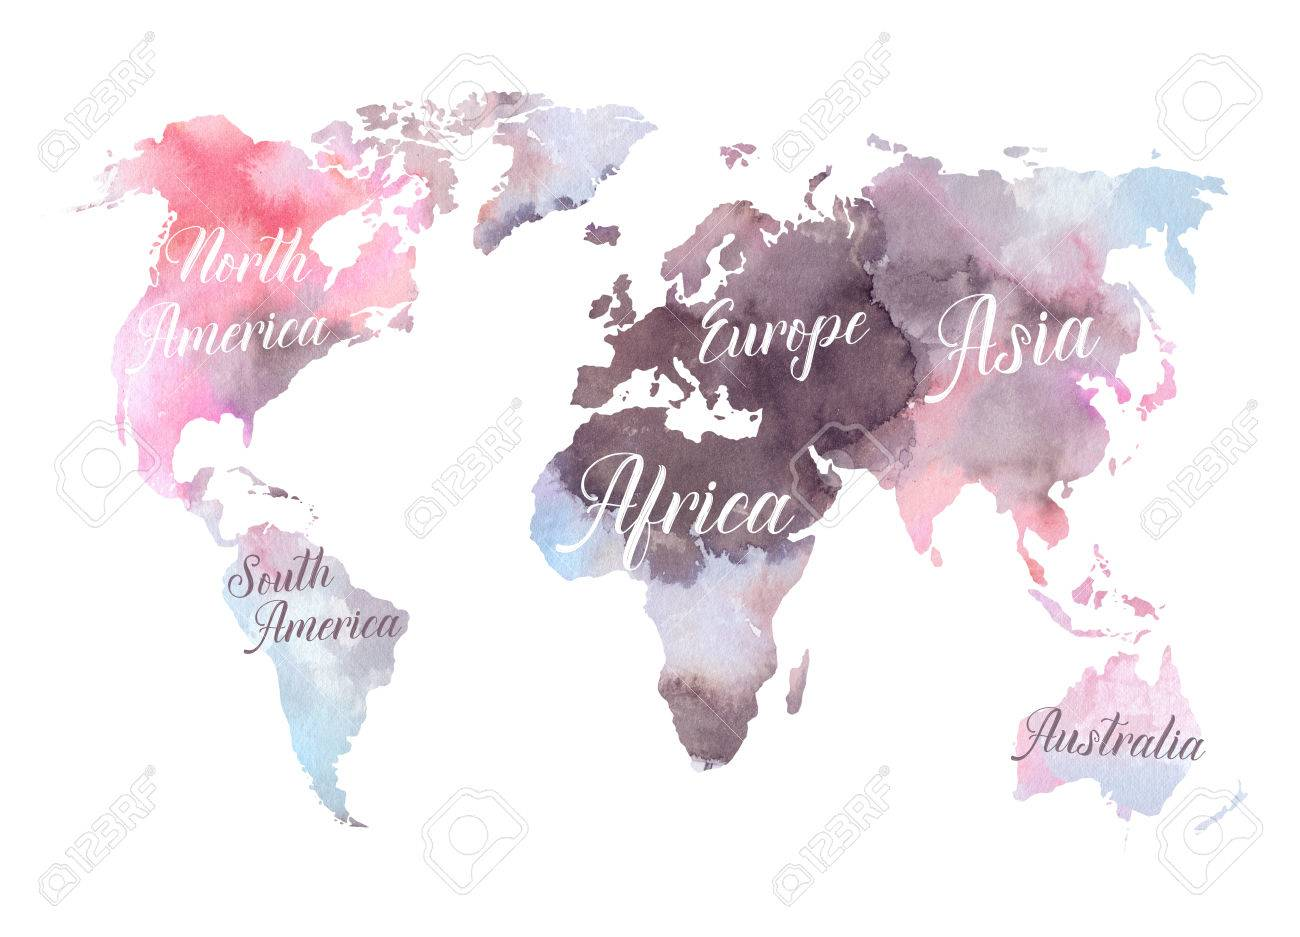 Watercolor Illustration Colorful World Map With The Names Of - Colorful world map